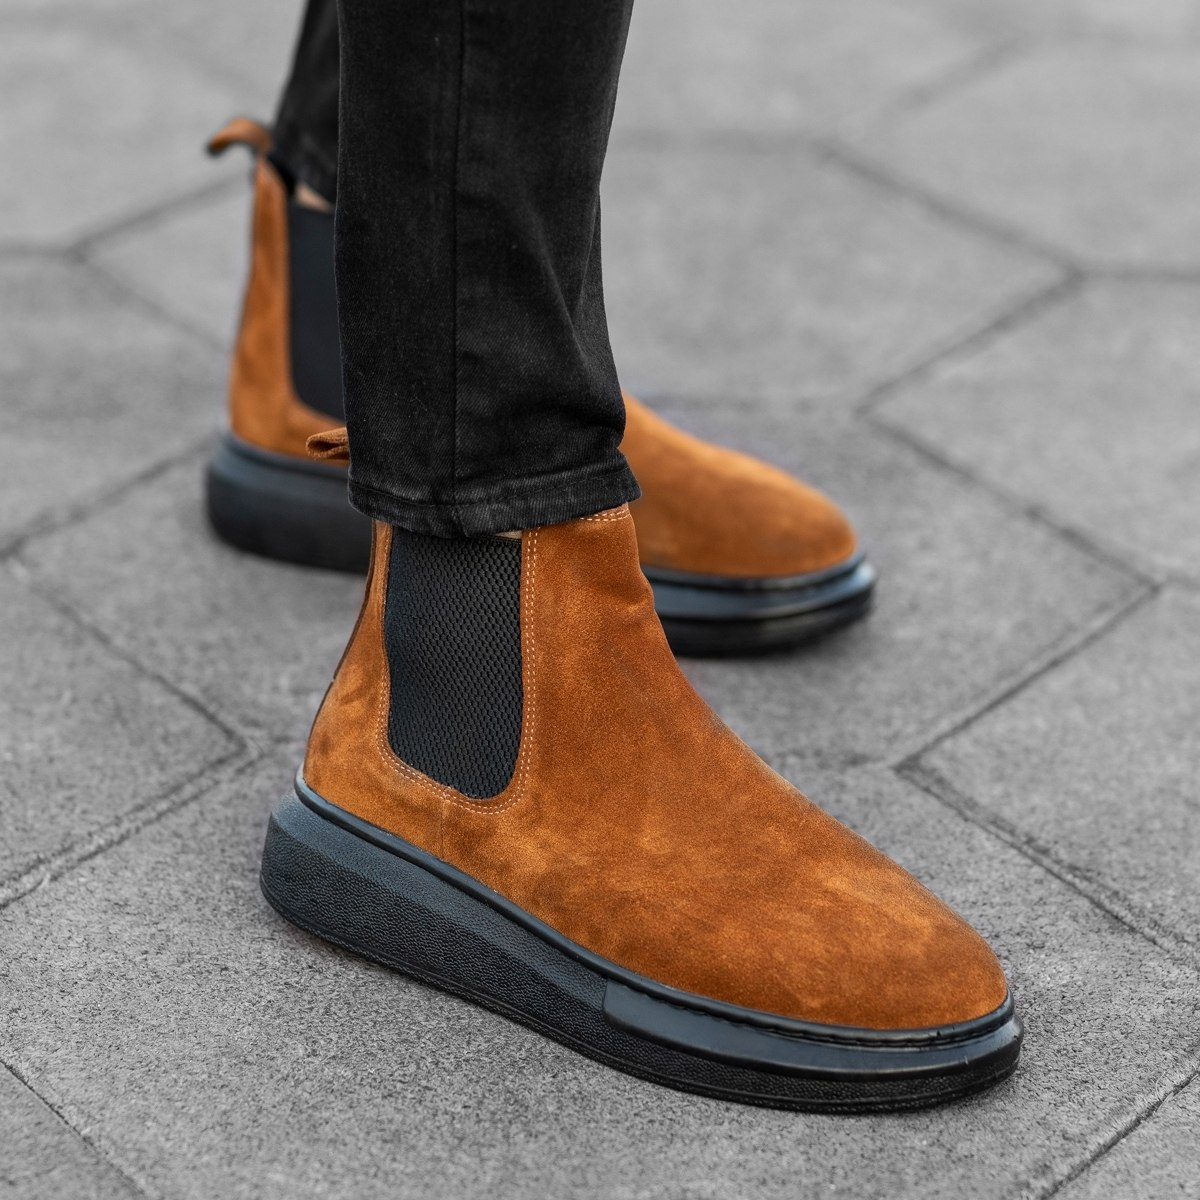 Genuine-Suede Hype Sole Chelsea Boots In Brown Mv Premium Brand - 1